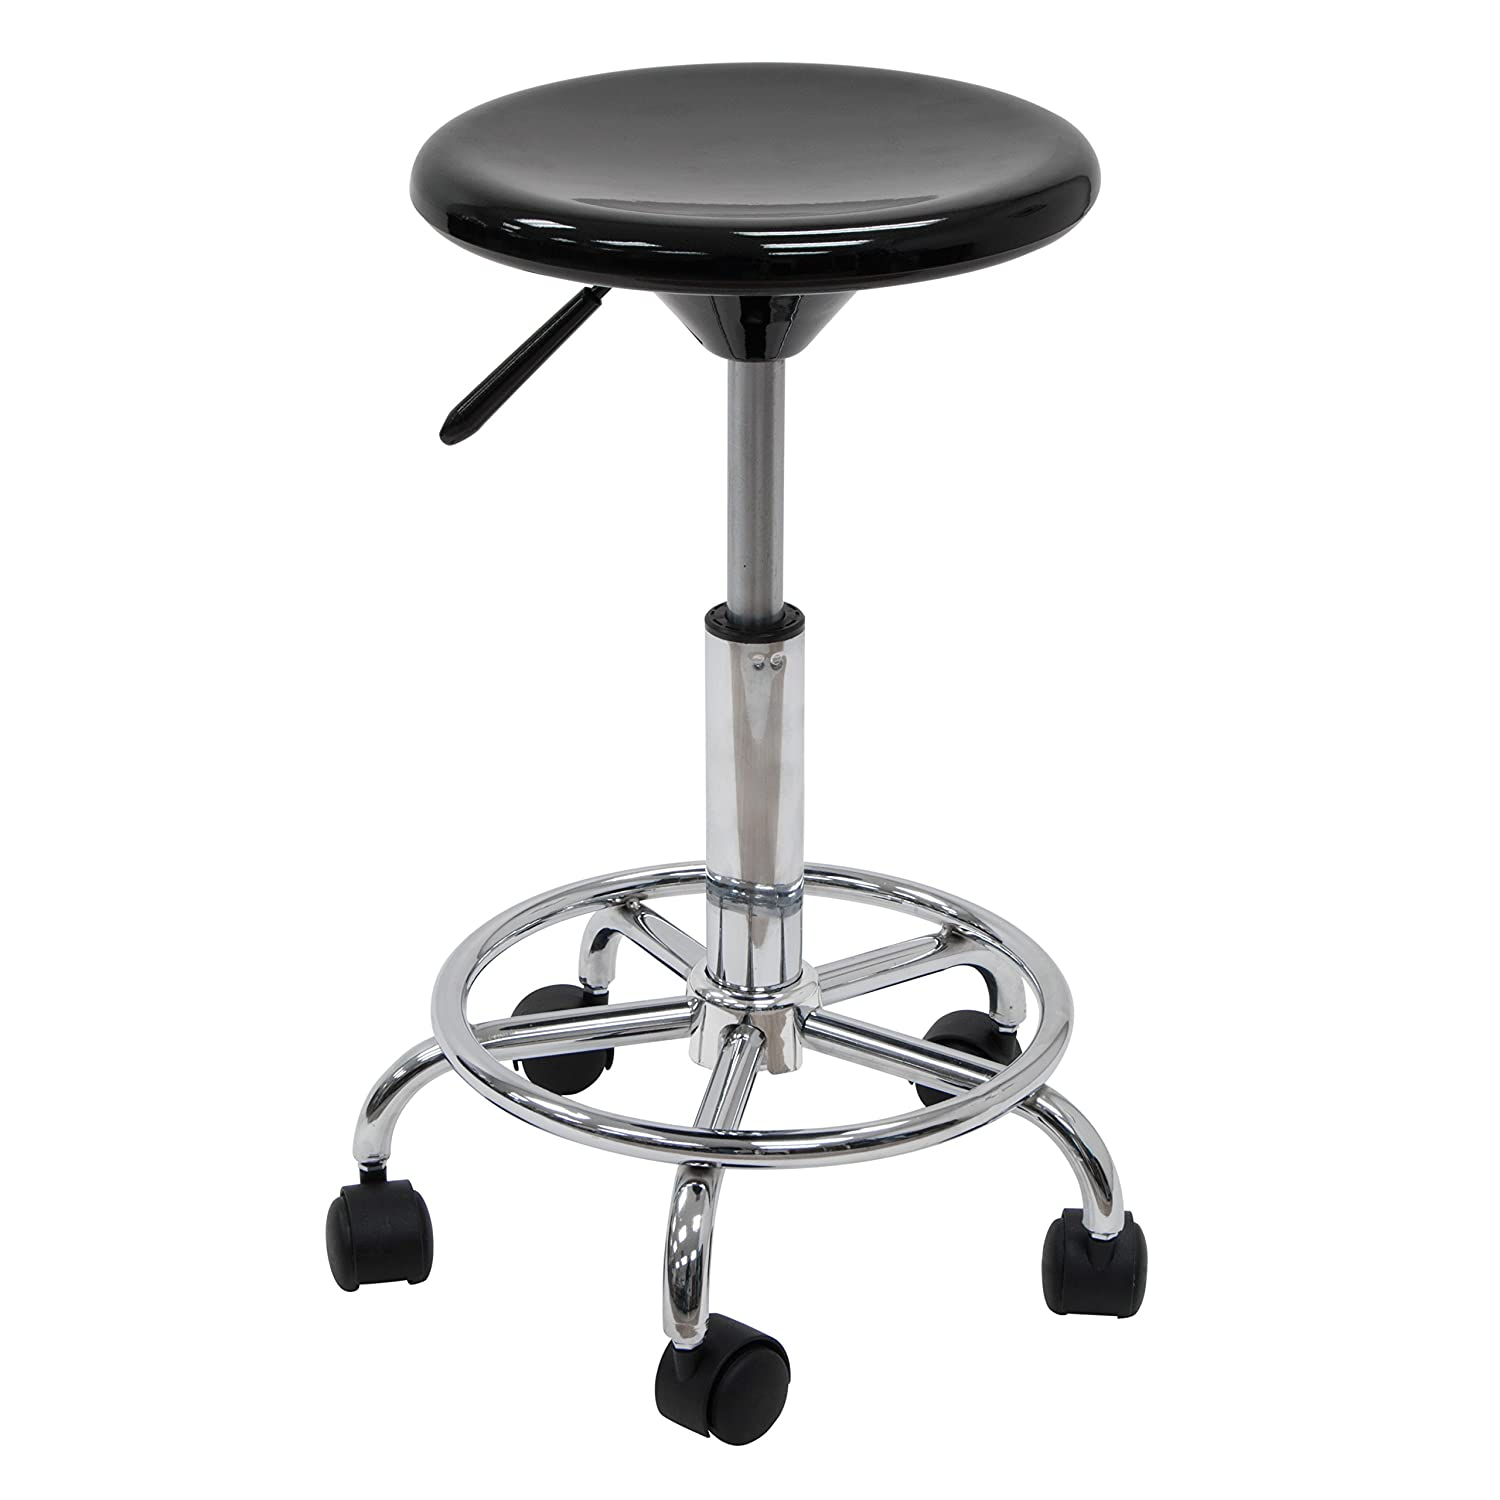 Amazon.com Studio Designs Studio Stool in Black with Chrome 13177 Arts Crafts u0026 Sewing  sc 1 st  Amazon.com & Amazon.com: Studio Designs Studio Stool in Black with Chrome 13177 ... islam-shia.org